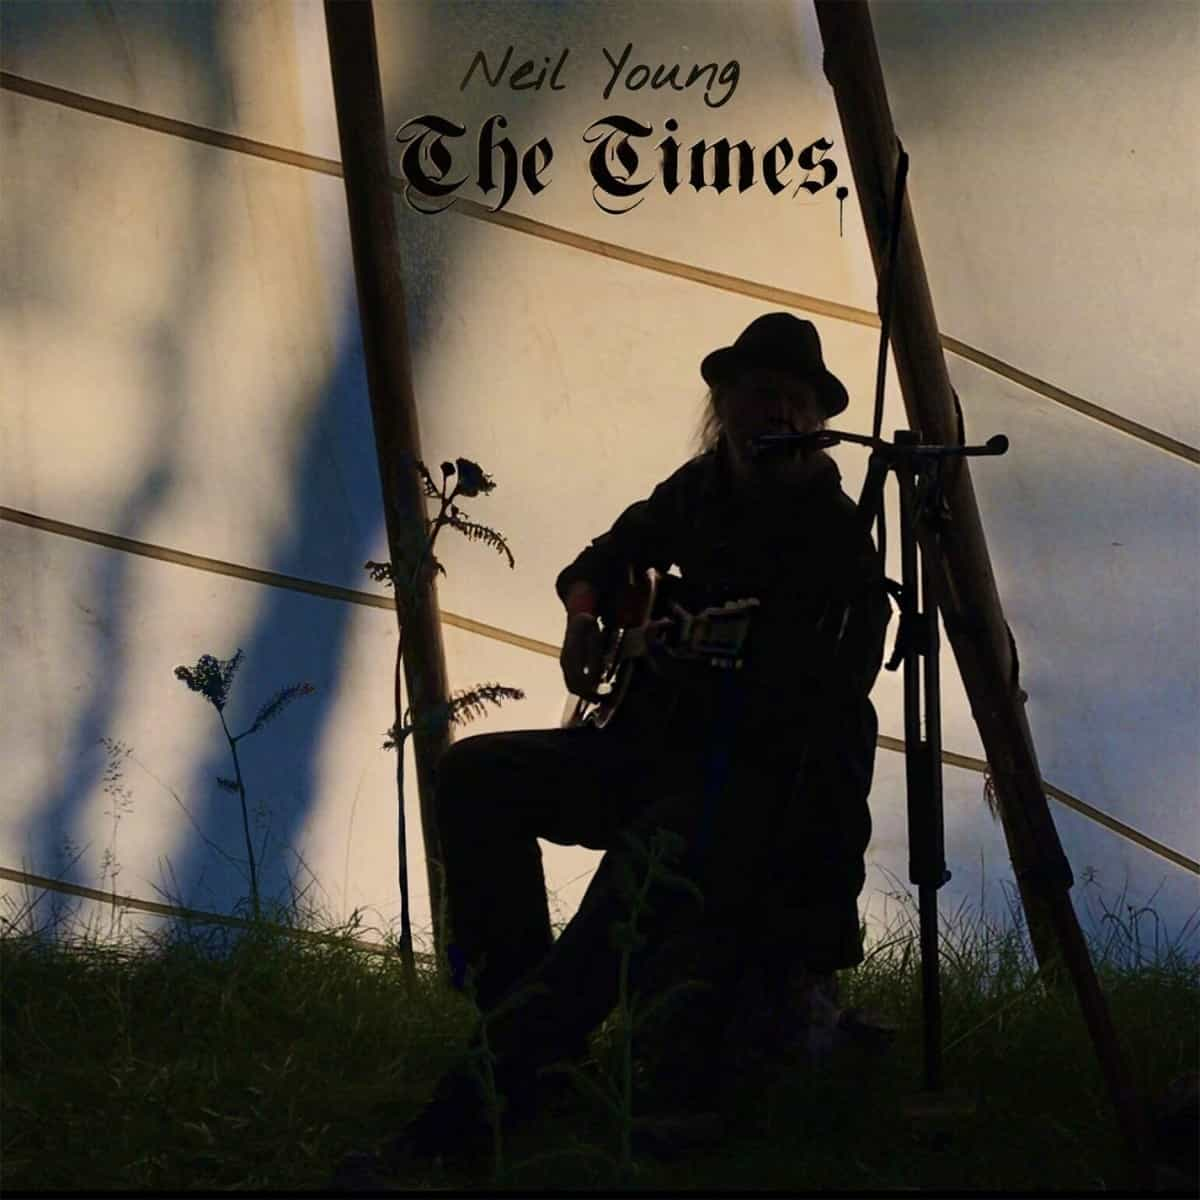 Neil Young: The Times. CD. Norman Records UK